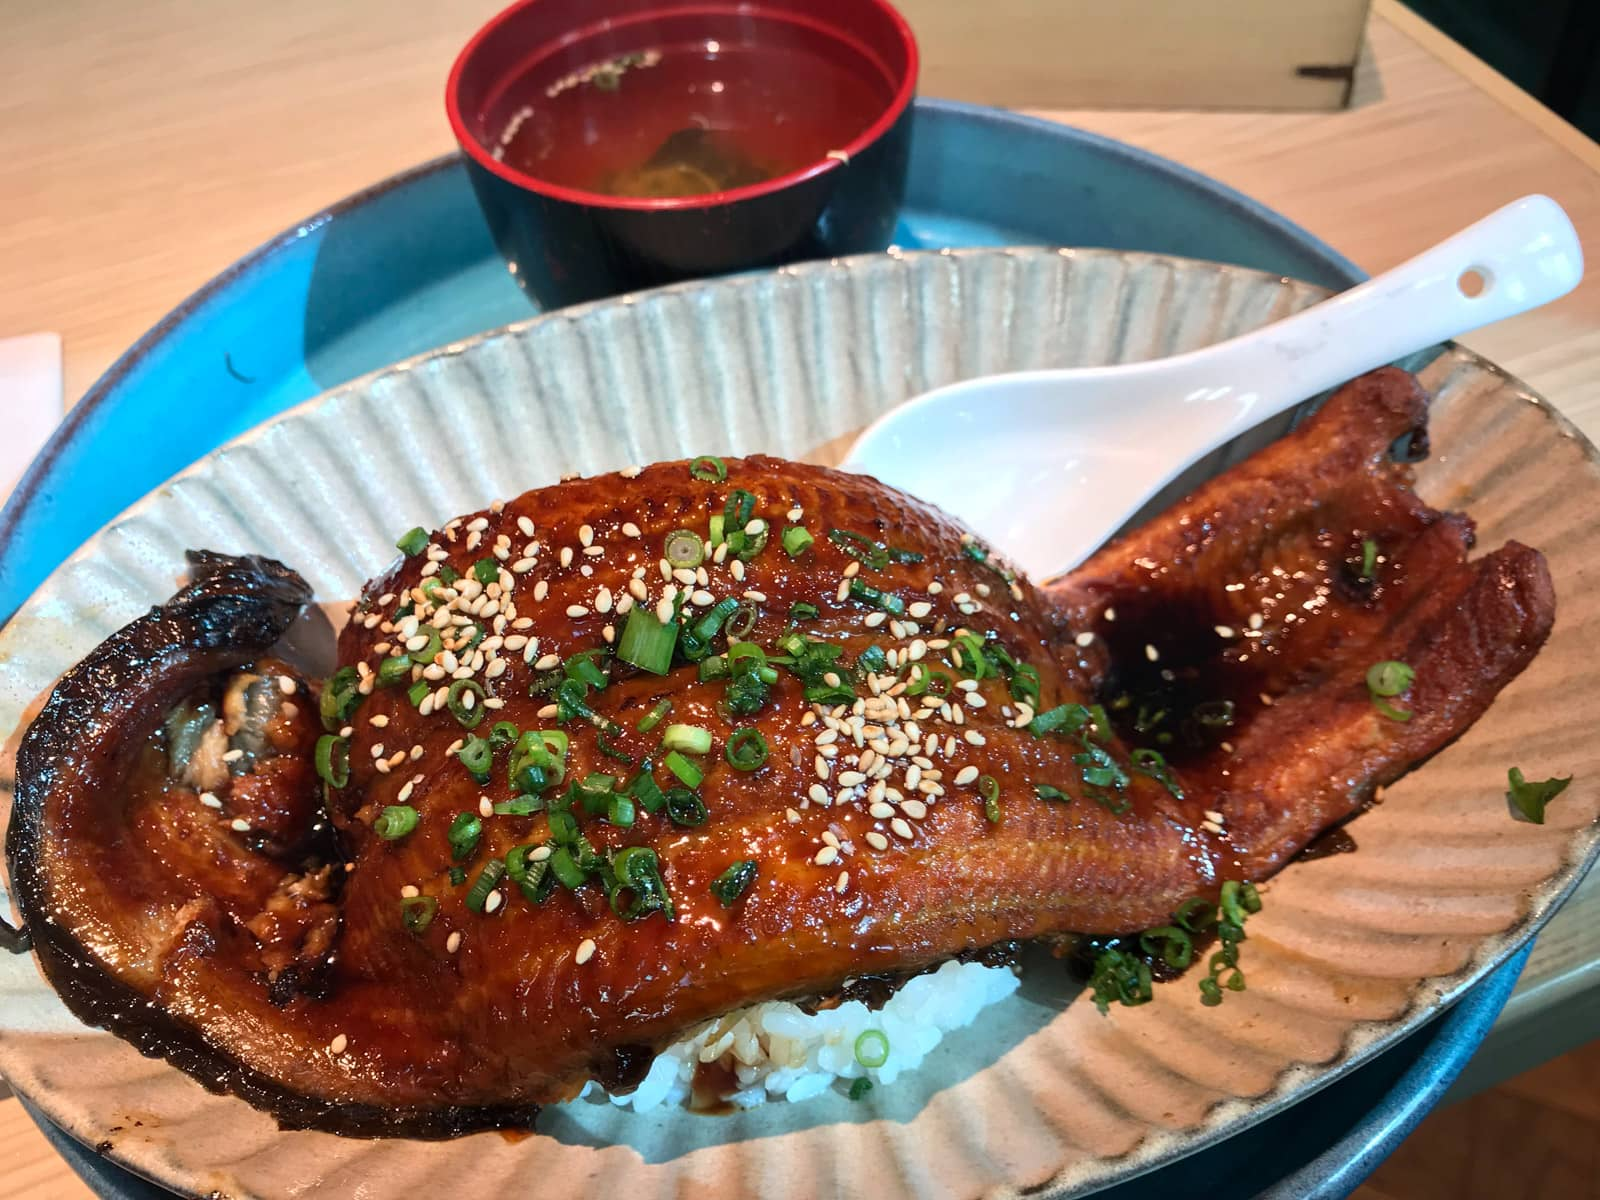 A large grilled eel (Japanese unagi) on a bed of white rice